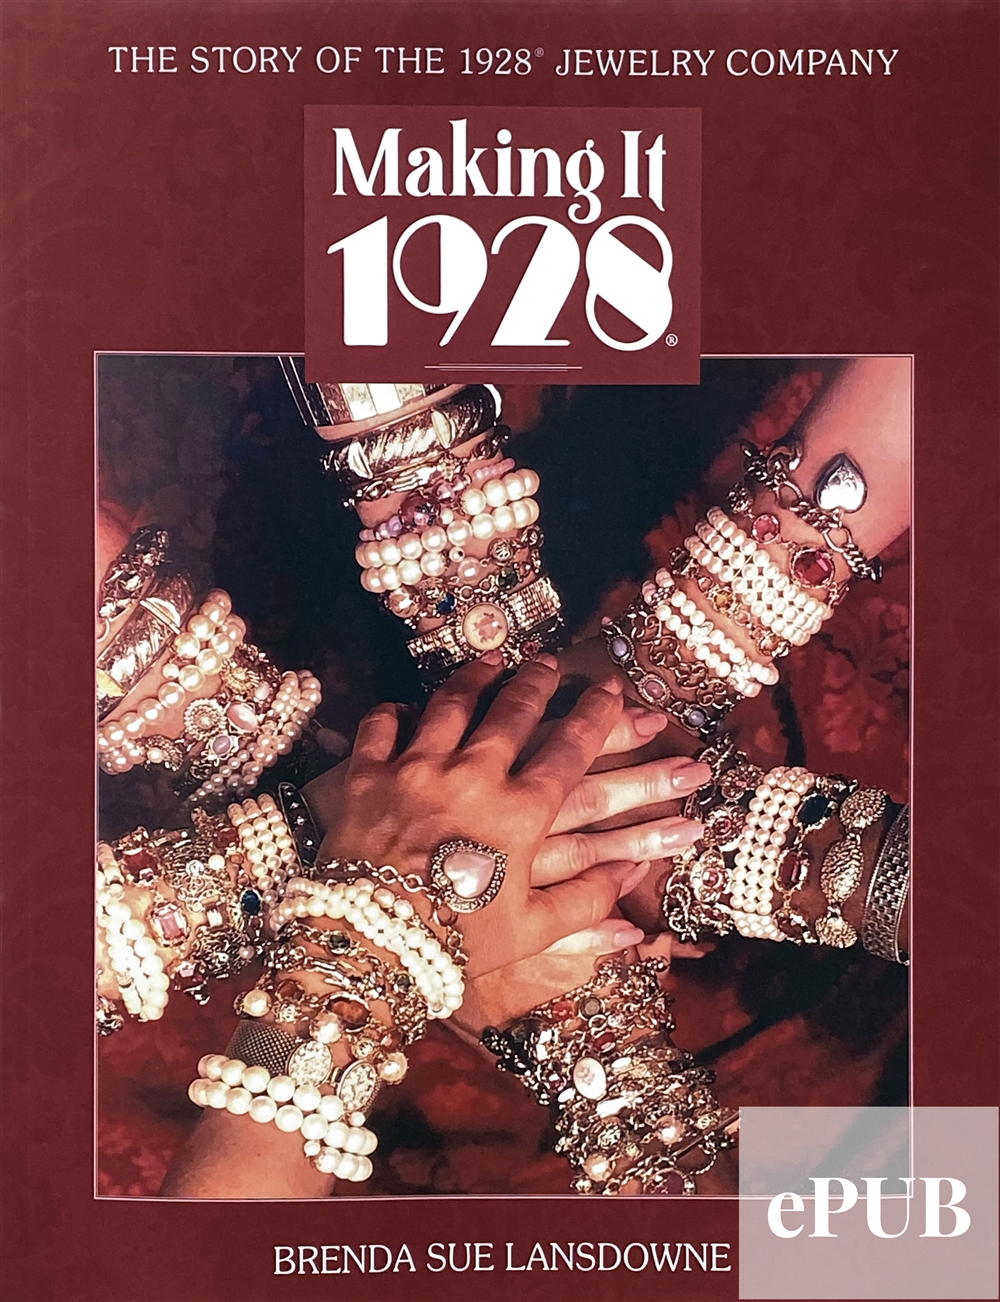 Making It 1928 Book: The Story Of The 1928 Jewelry Company EPUB